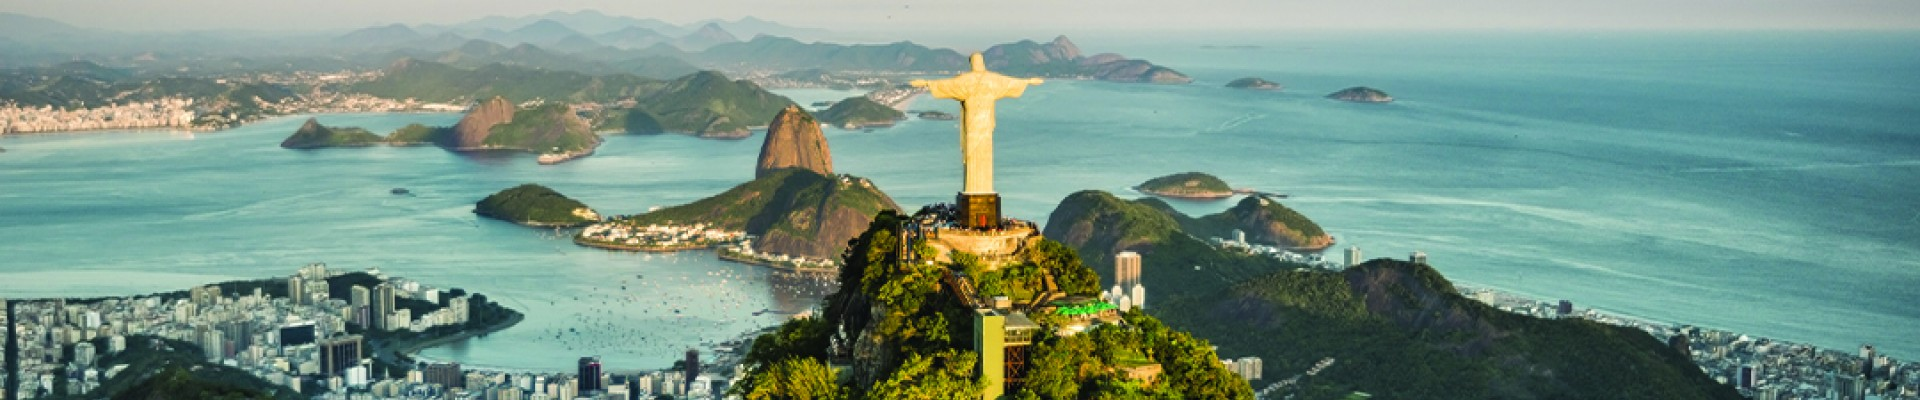 4* Windsor Excelsior - Rio - Brazil Early Booking Promo Package (3 Nights)